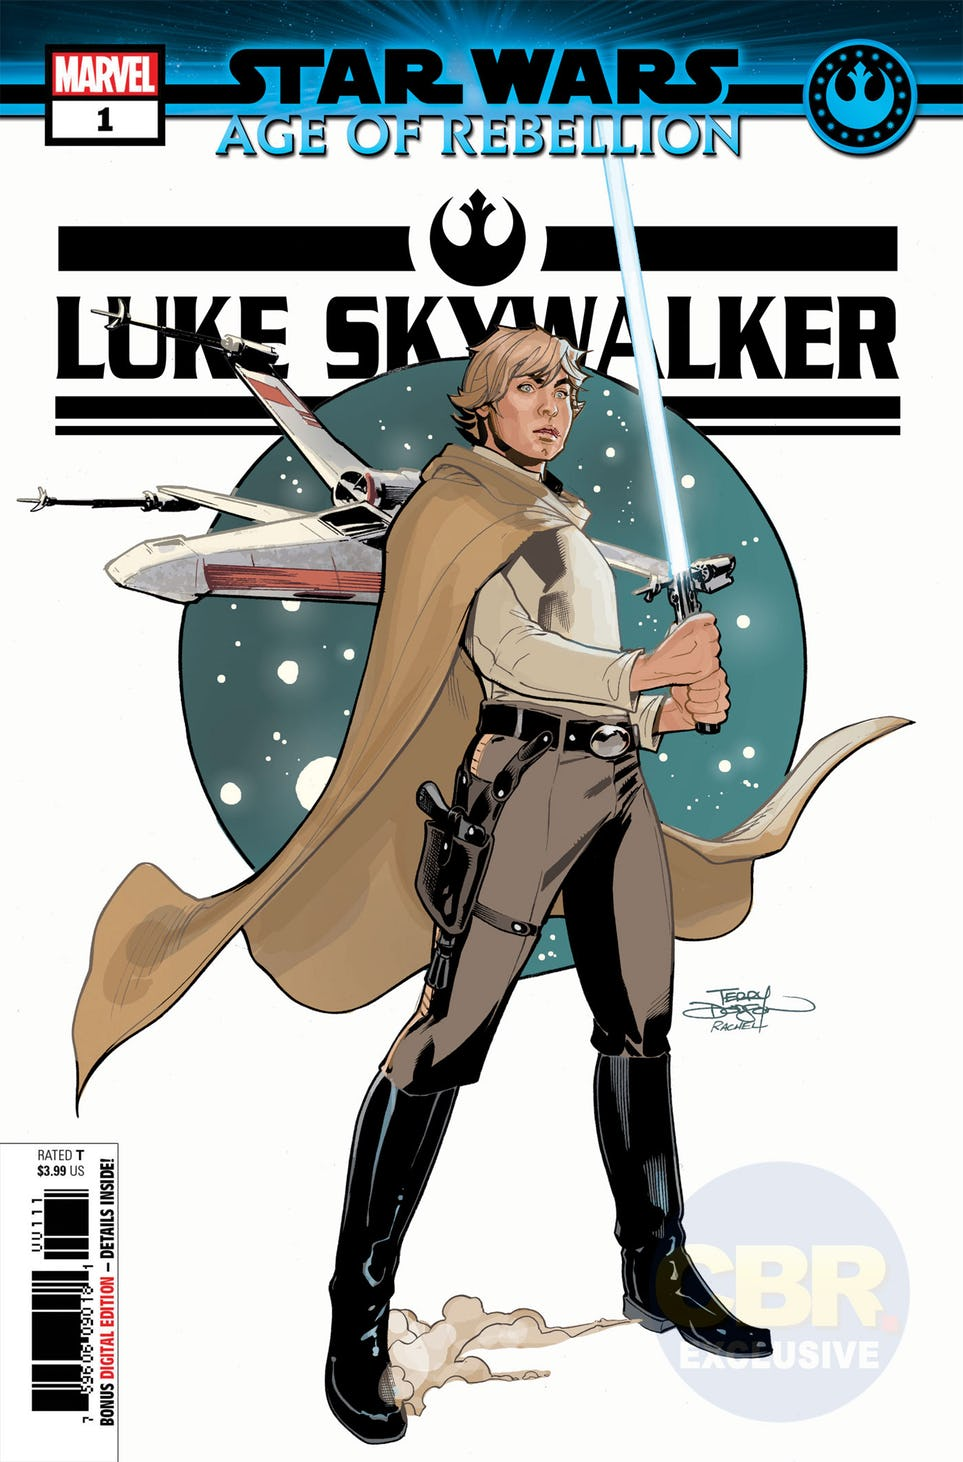 Luke-Skywalker-mockup